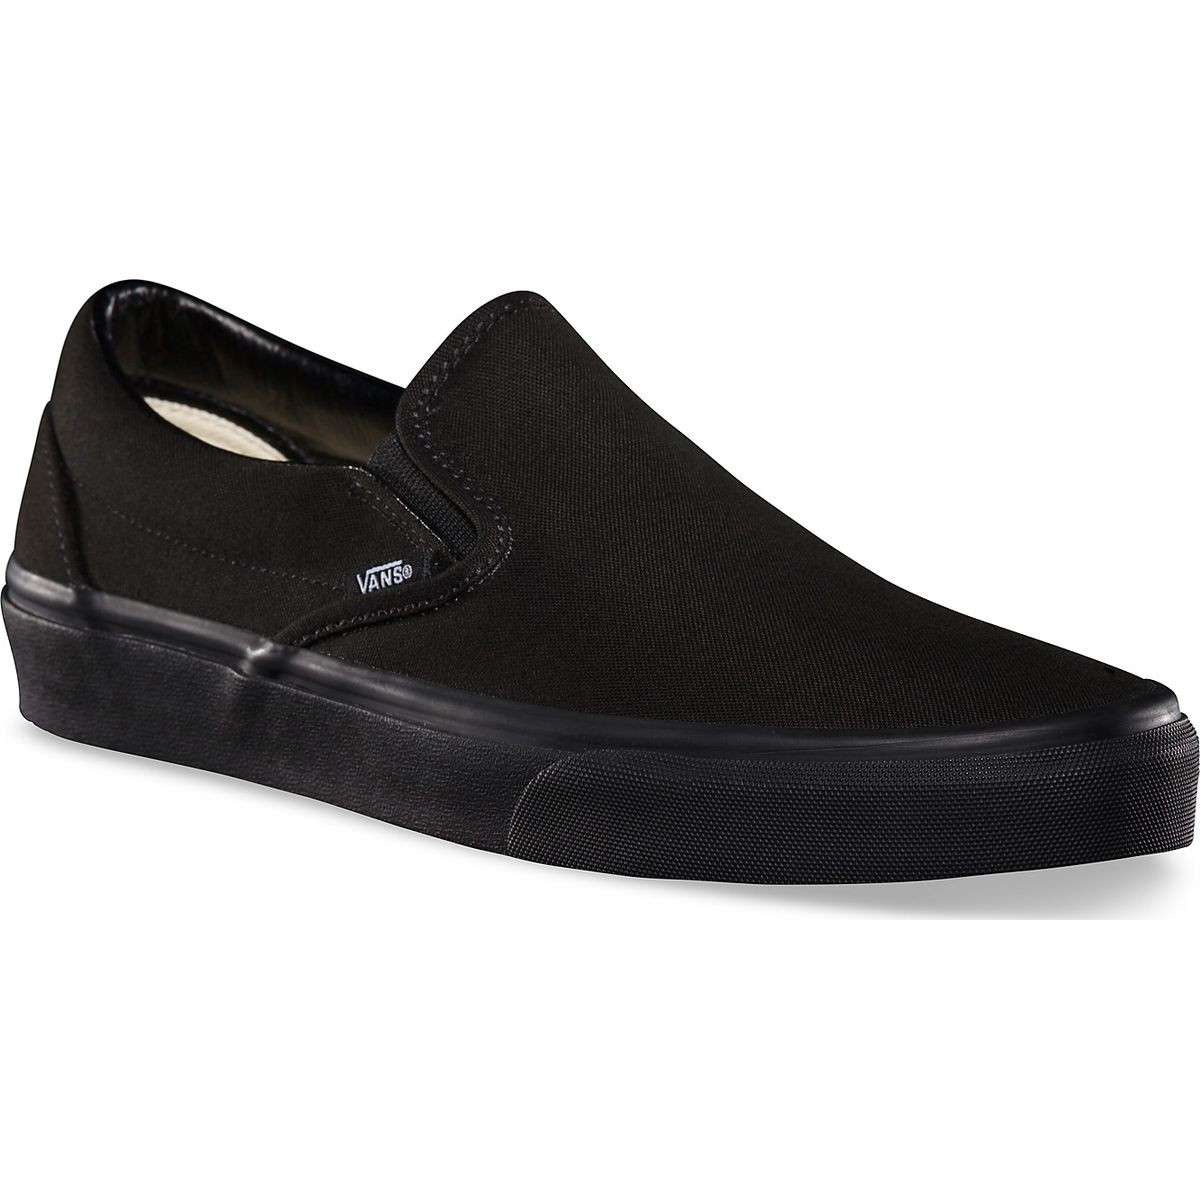 Vans Classic Slip On Youth Shoes - Black/Black - 5.0